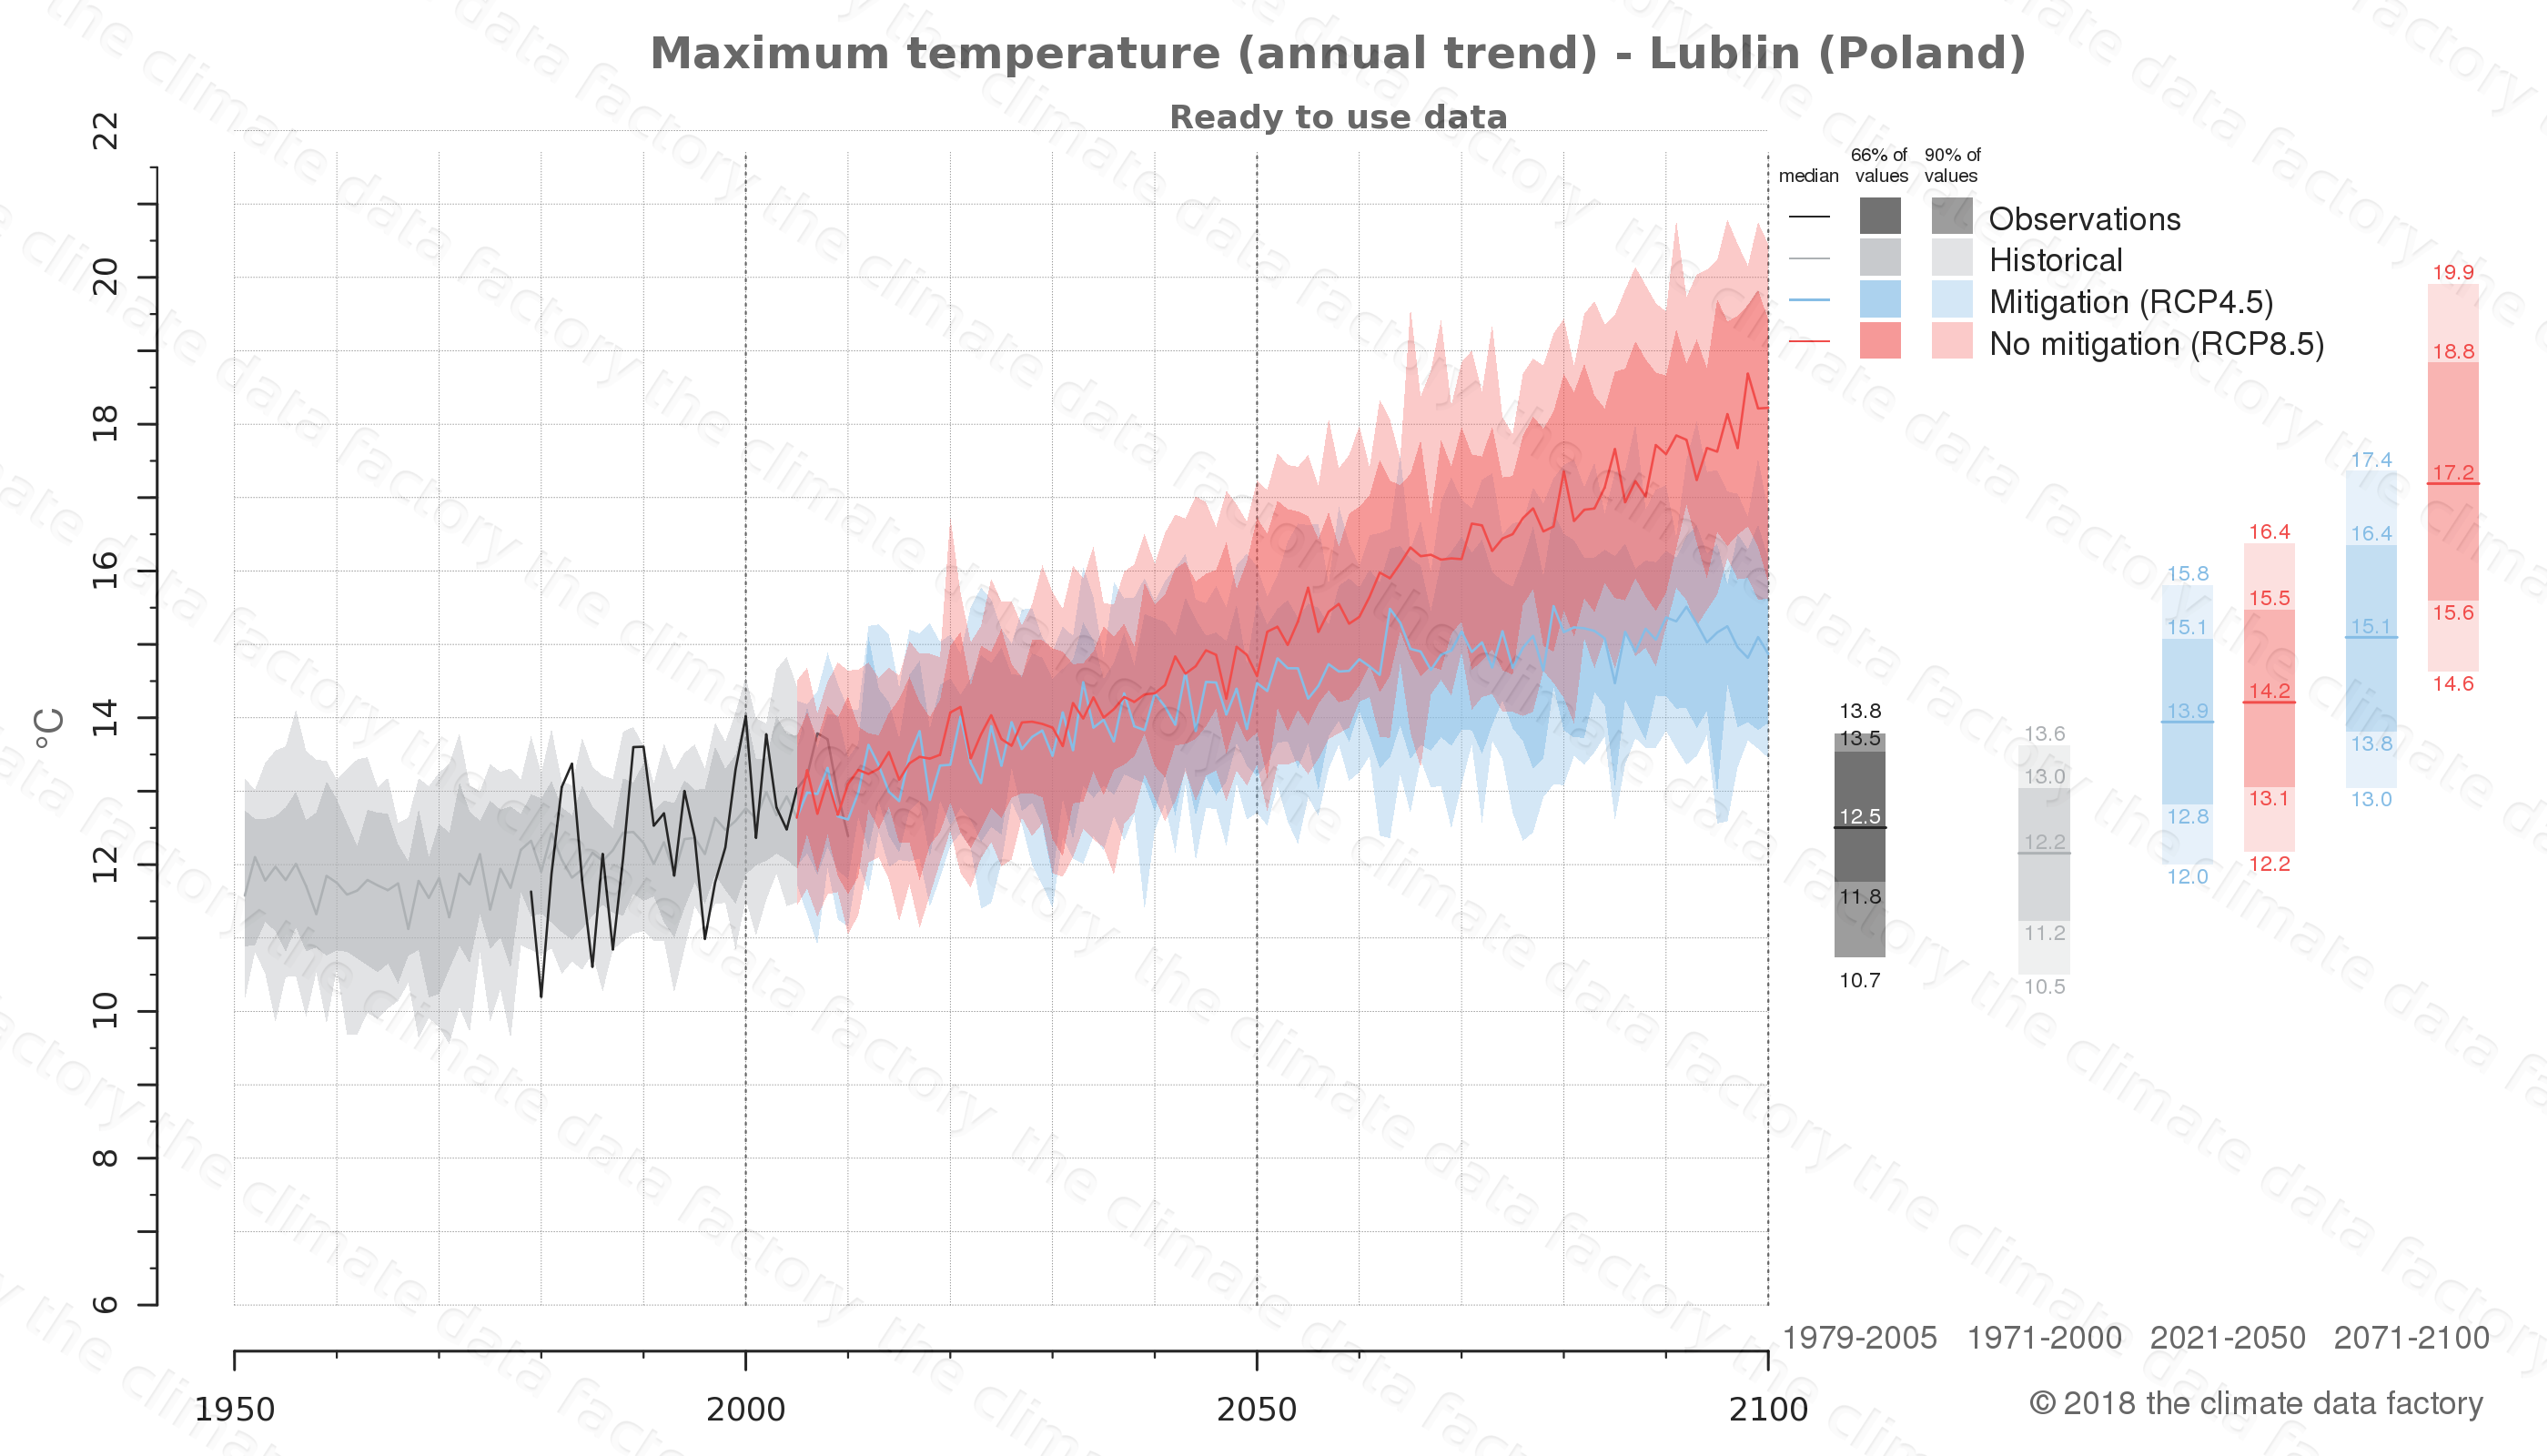 climate change data policy adaptation climate graph city data maximum-temperature lublin poland